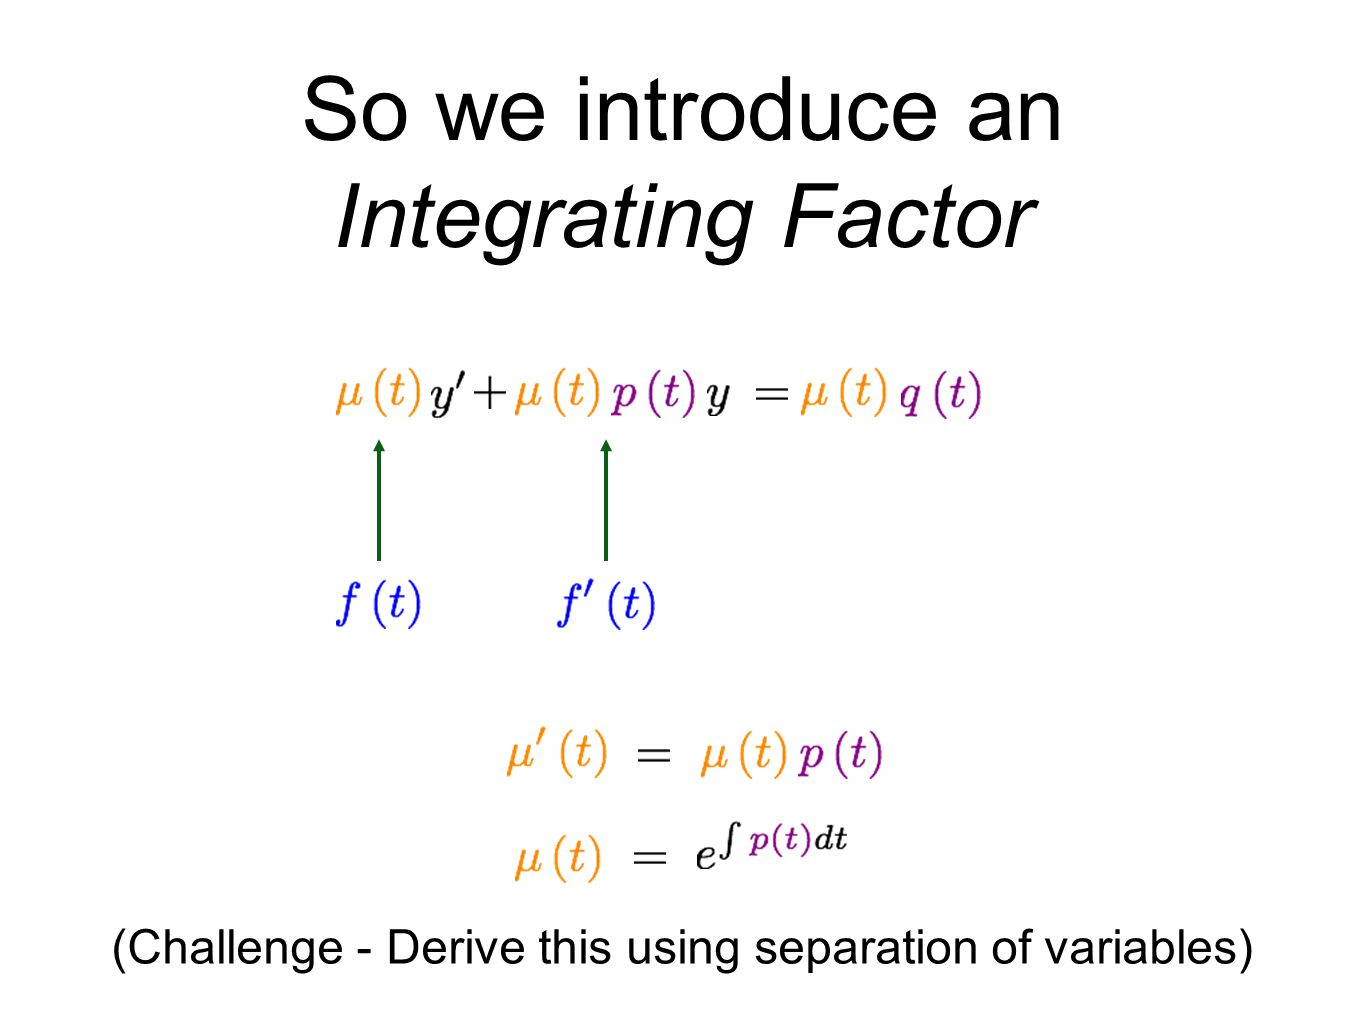 (Challenge - Derive this using separation of variables)